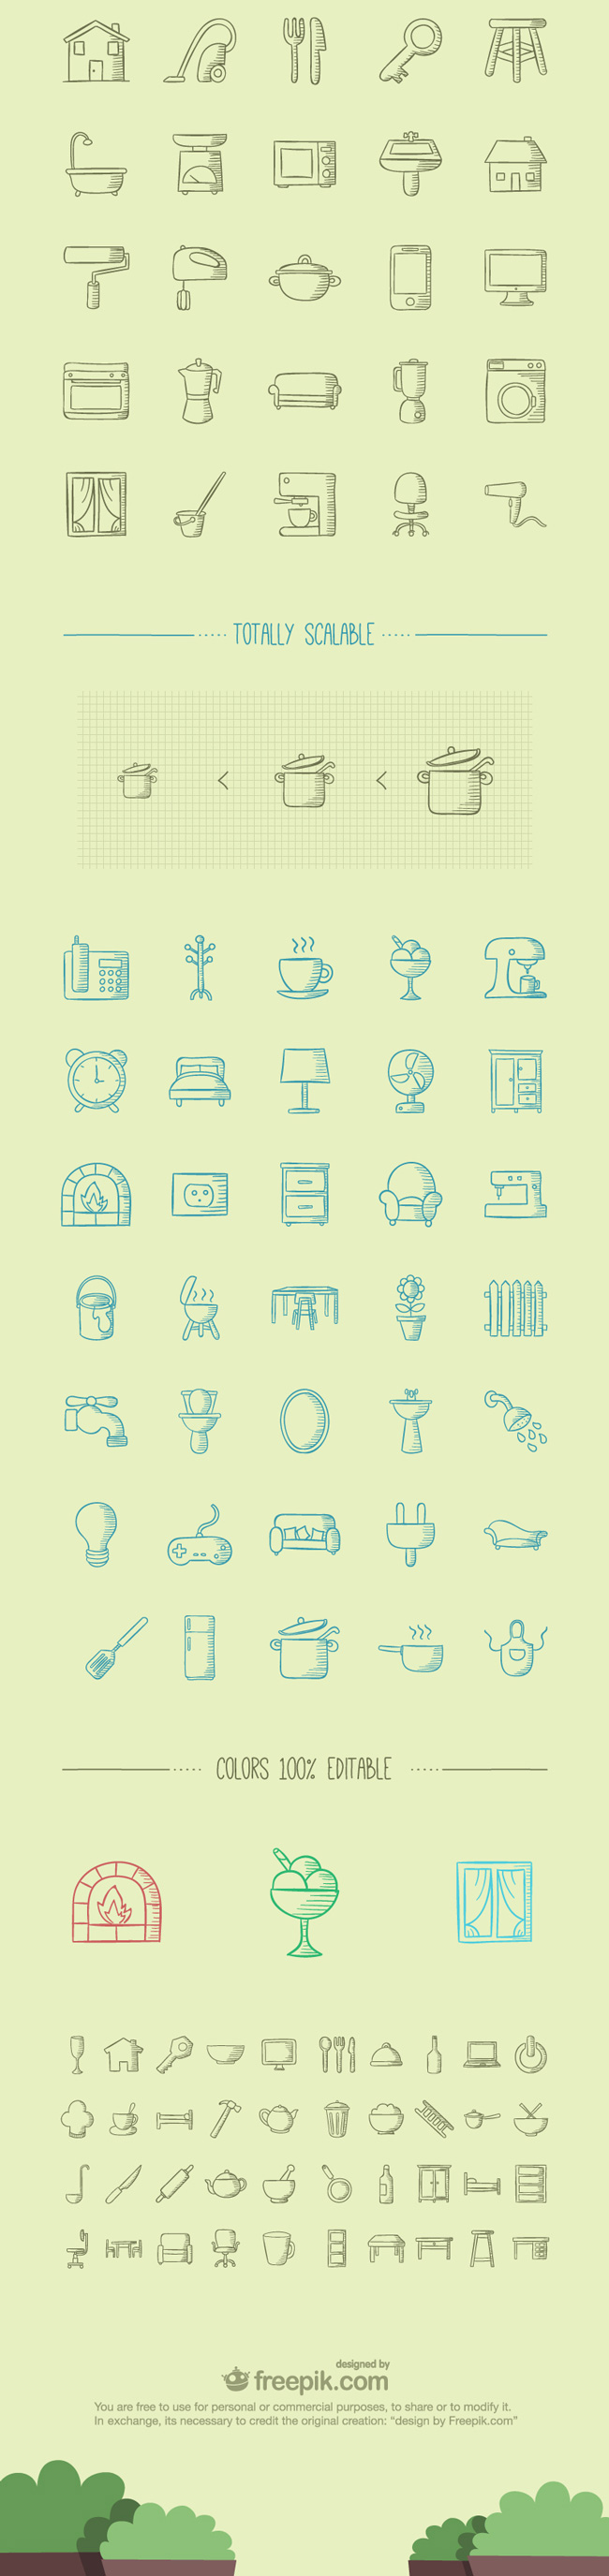 2.100 Handmade Icons About Home Stuff